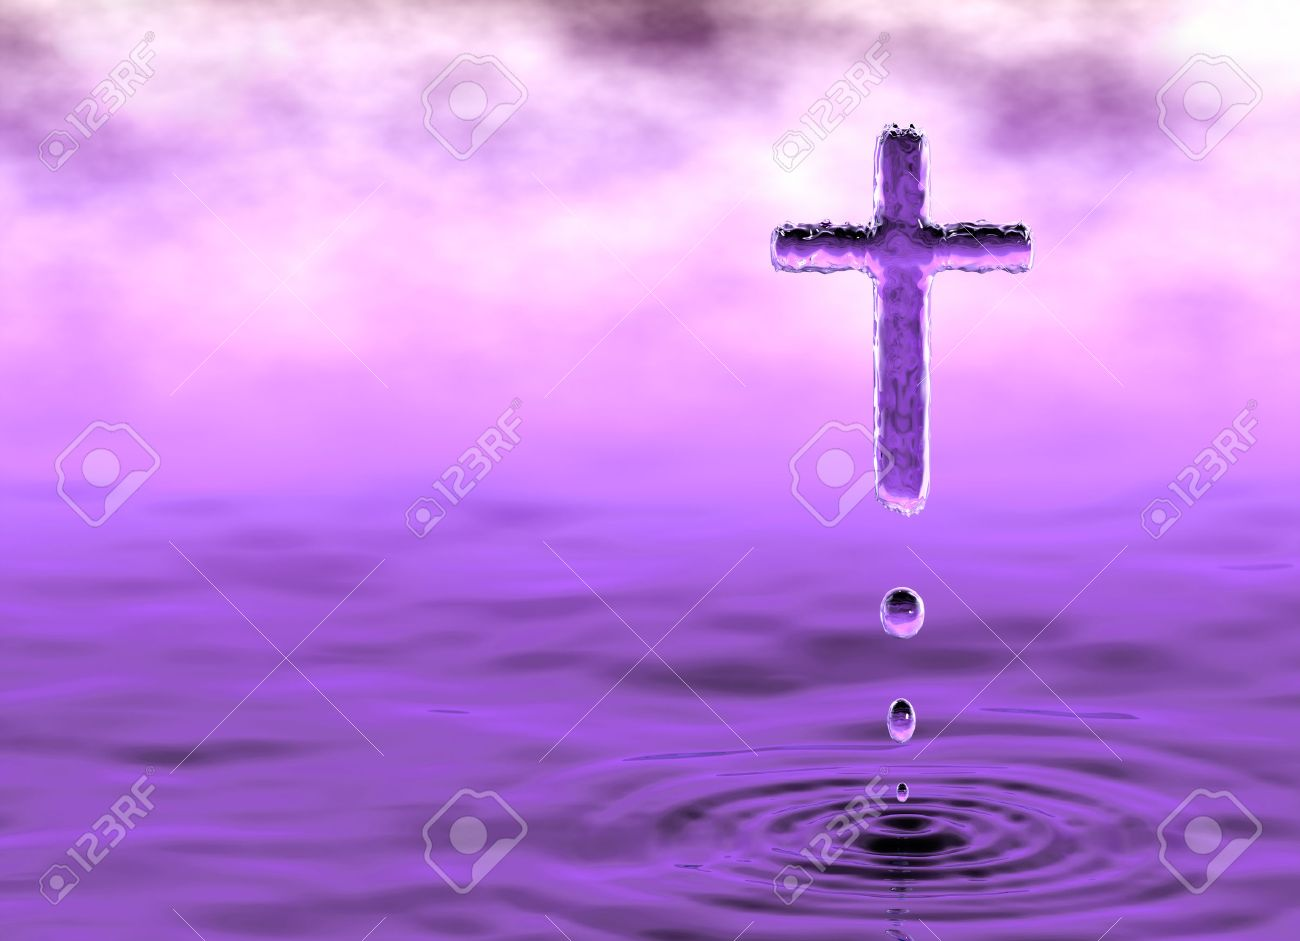 Silhouette of the holy cross on background of storm clouds stock - God Of Water Holy Cross Christian Symbol Of Holy Water In Violet Clouds